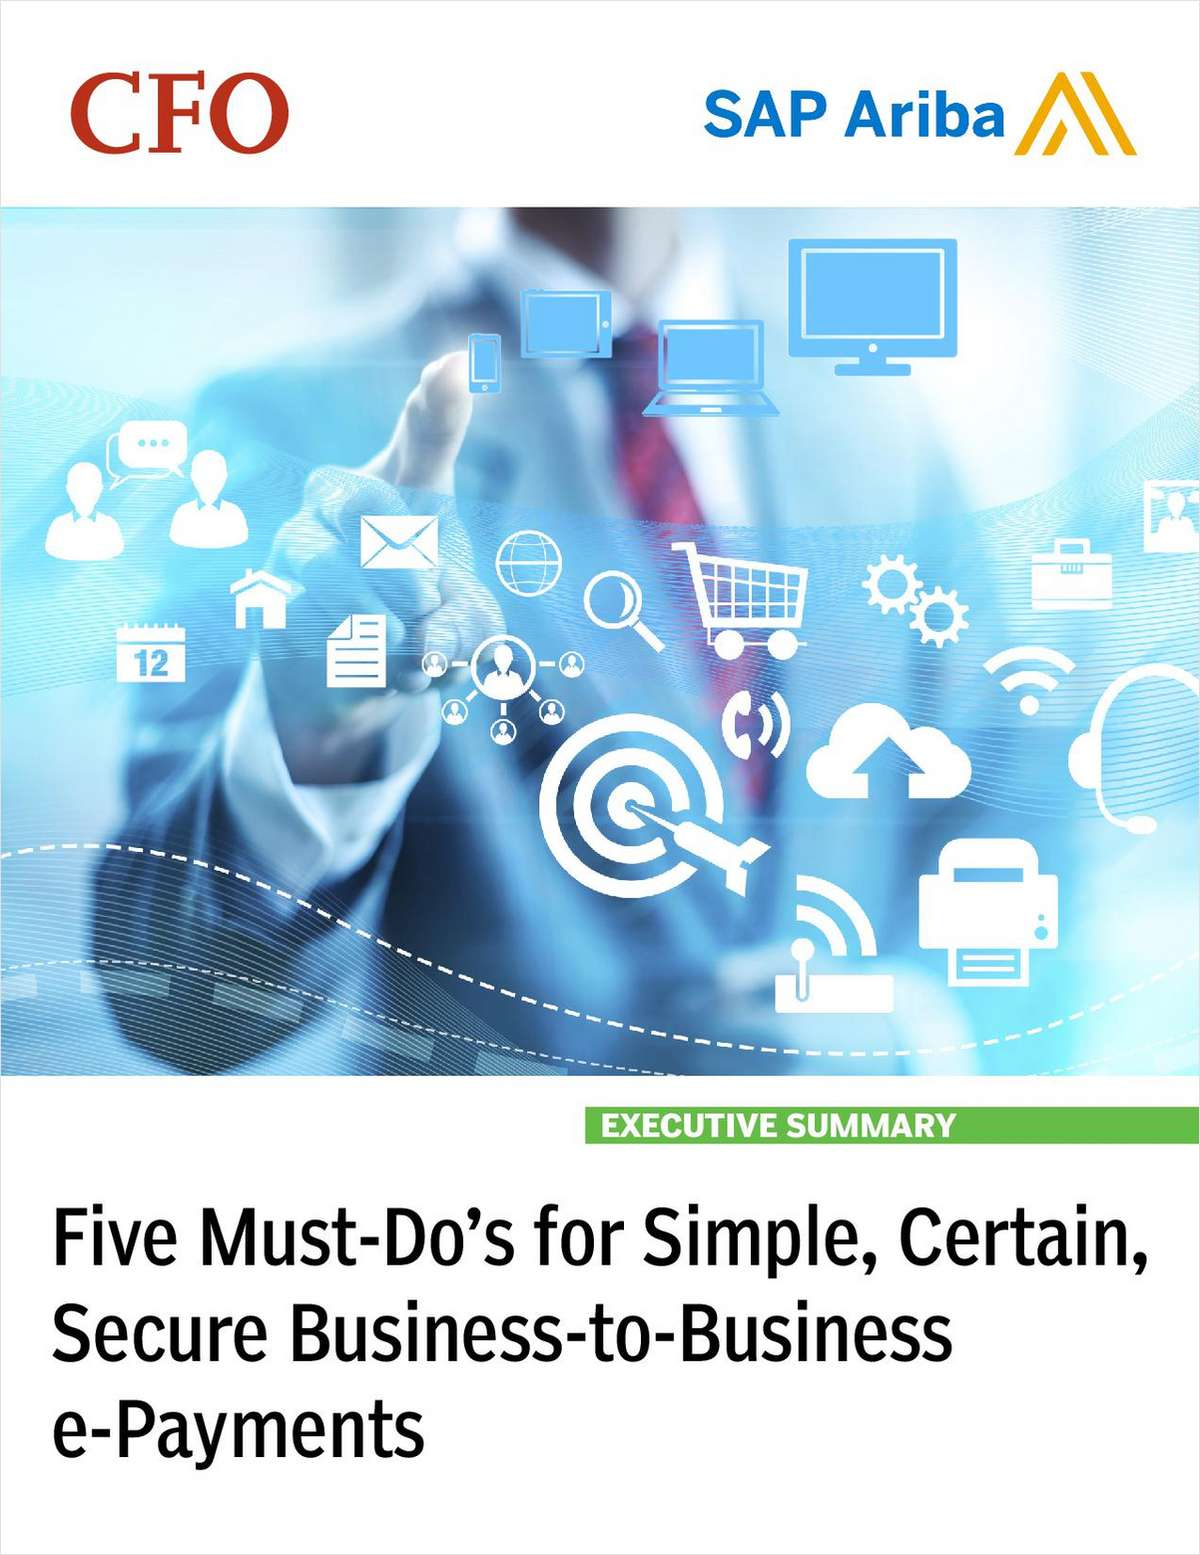 Five Must-Do's for Simple, Certain, Secure Business-to-Business E-Payments